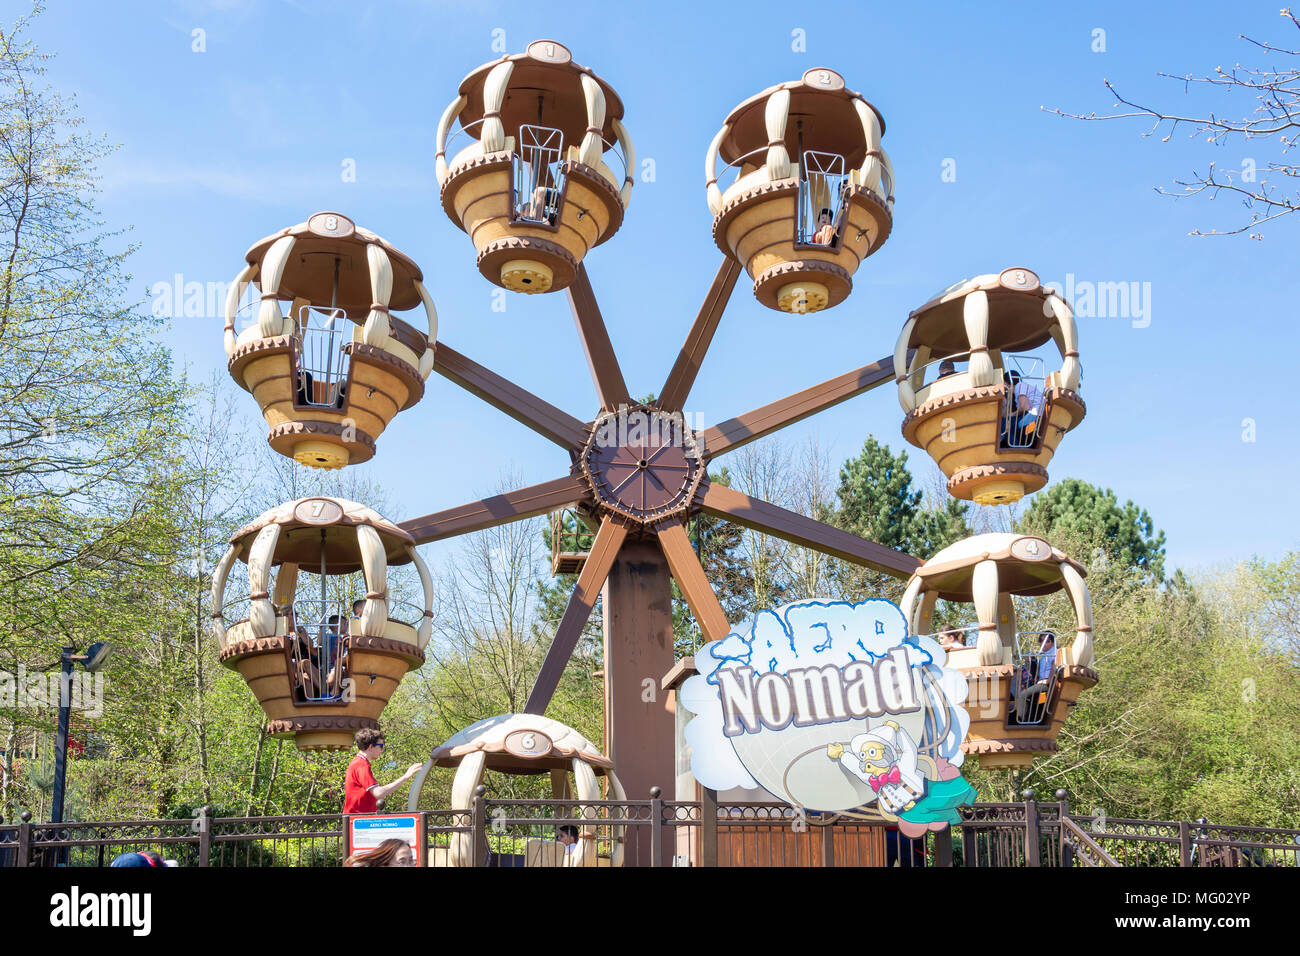 Aero Nomad ride in Kingdom of The Pharaohs, Legoland Windsor Resort, Windsor, Berkshire, England, United Kingdom - Stock Image